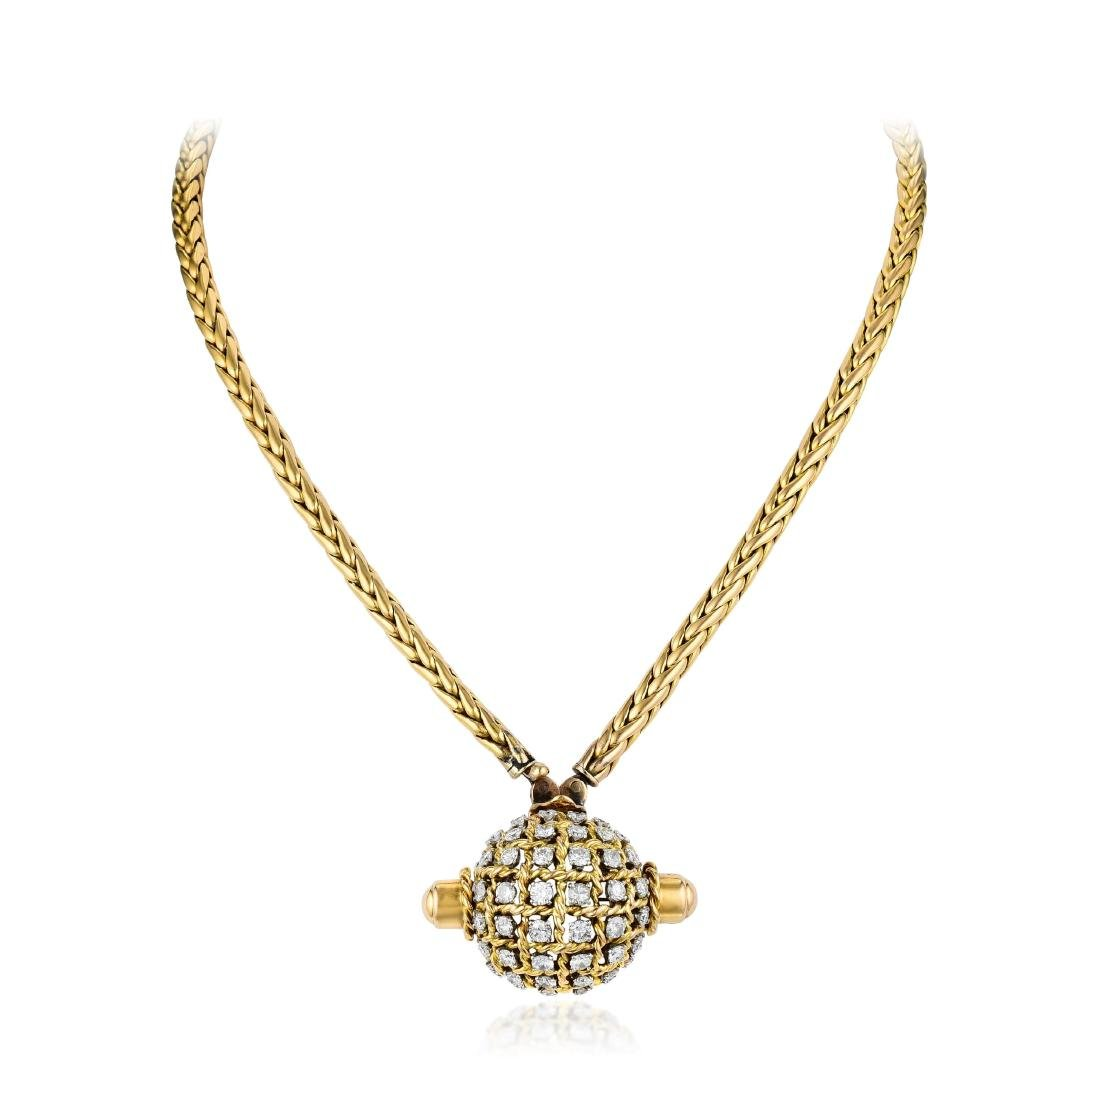 A Diamond Convertible Cover Watch Necklace/Bracelet,